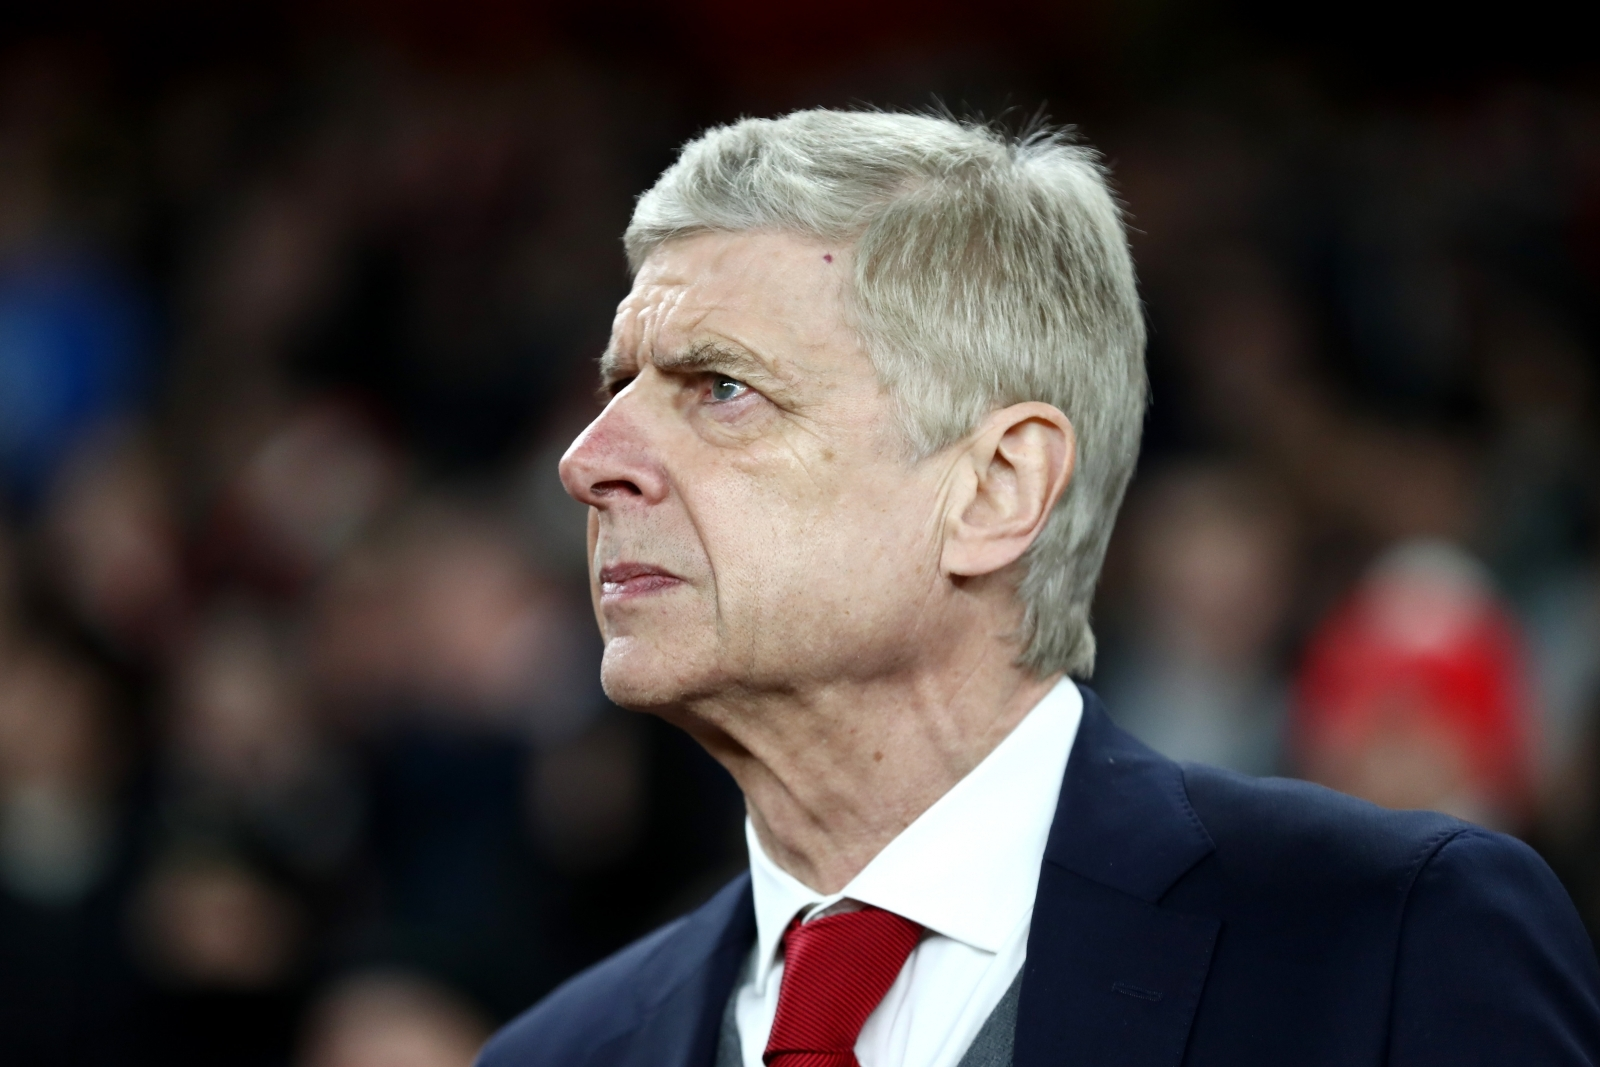 Ligue 1 boss eyes Arsenal move amid uncertainty over Wenger